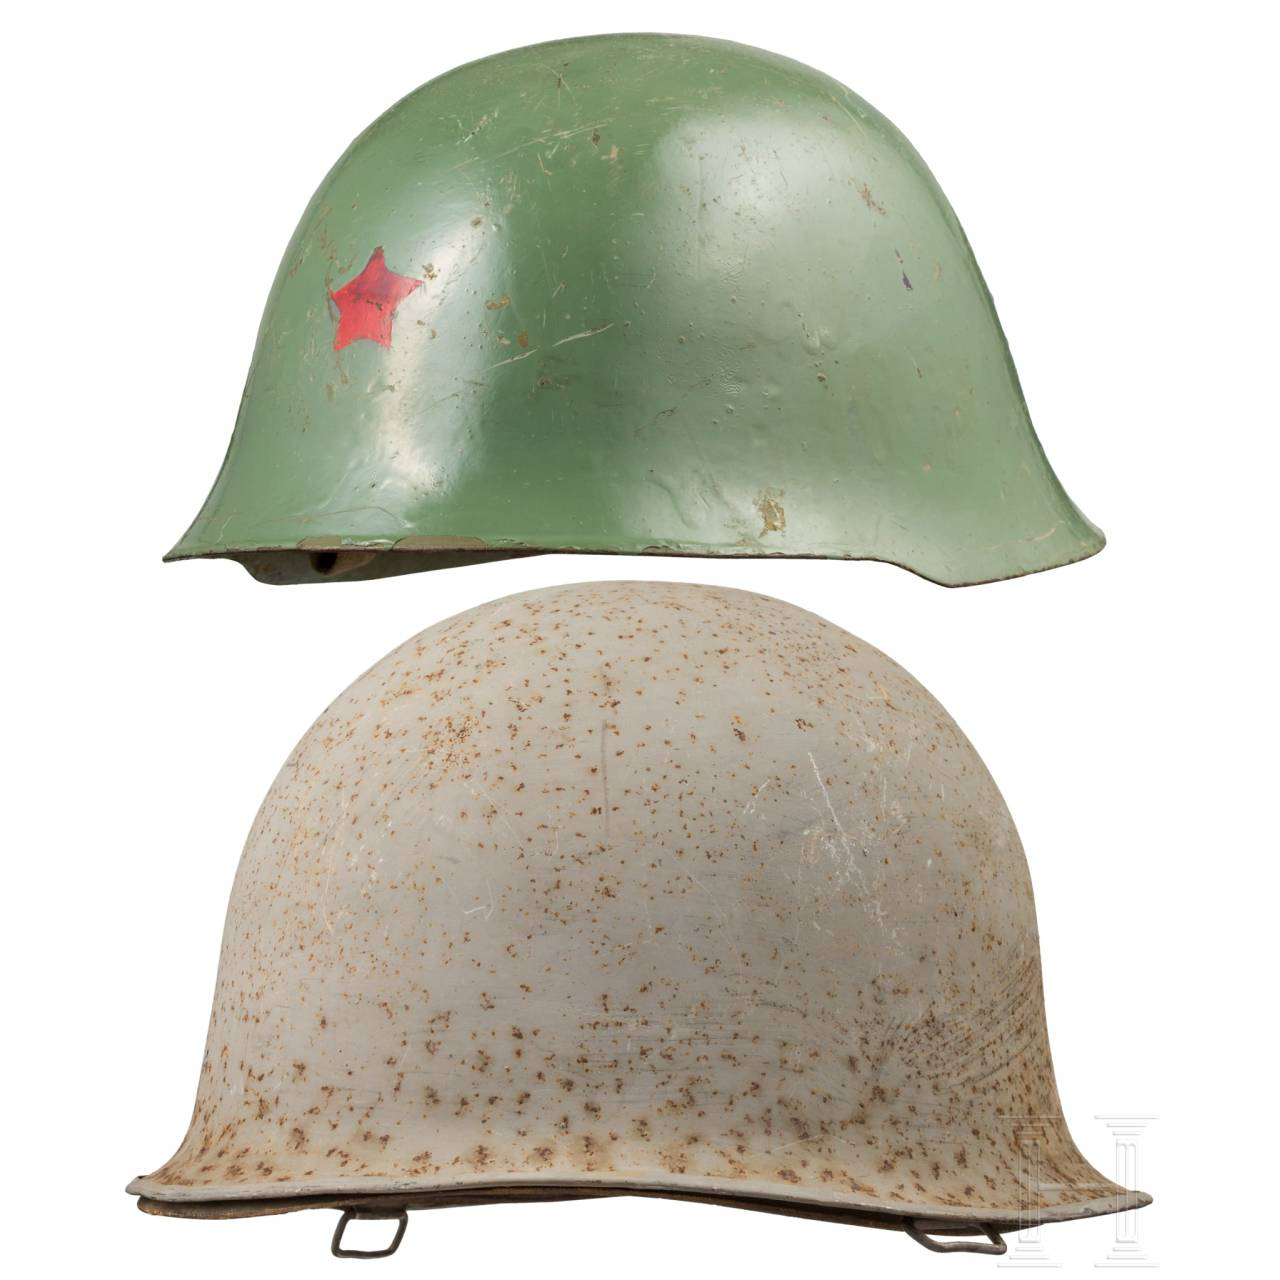 Two steel helmets, USA and China